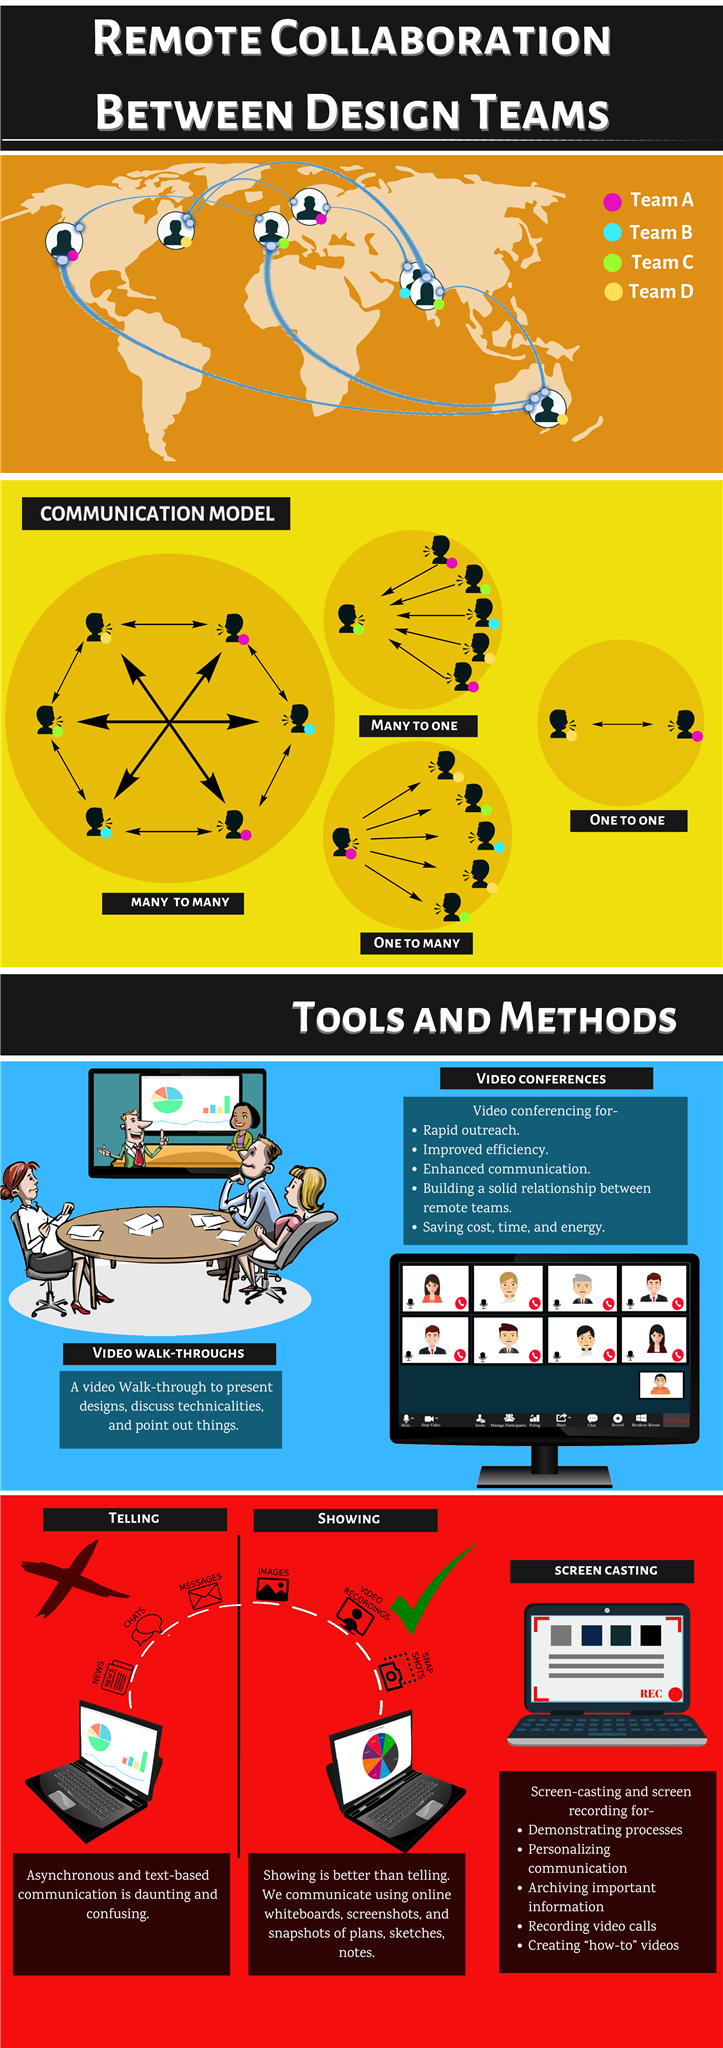 Remote Collaboration between Design Teams Infographic